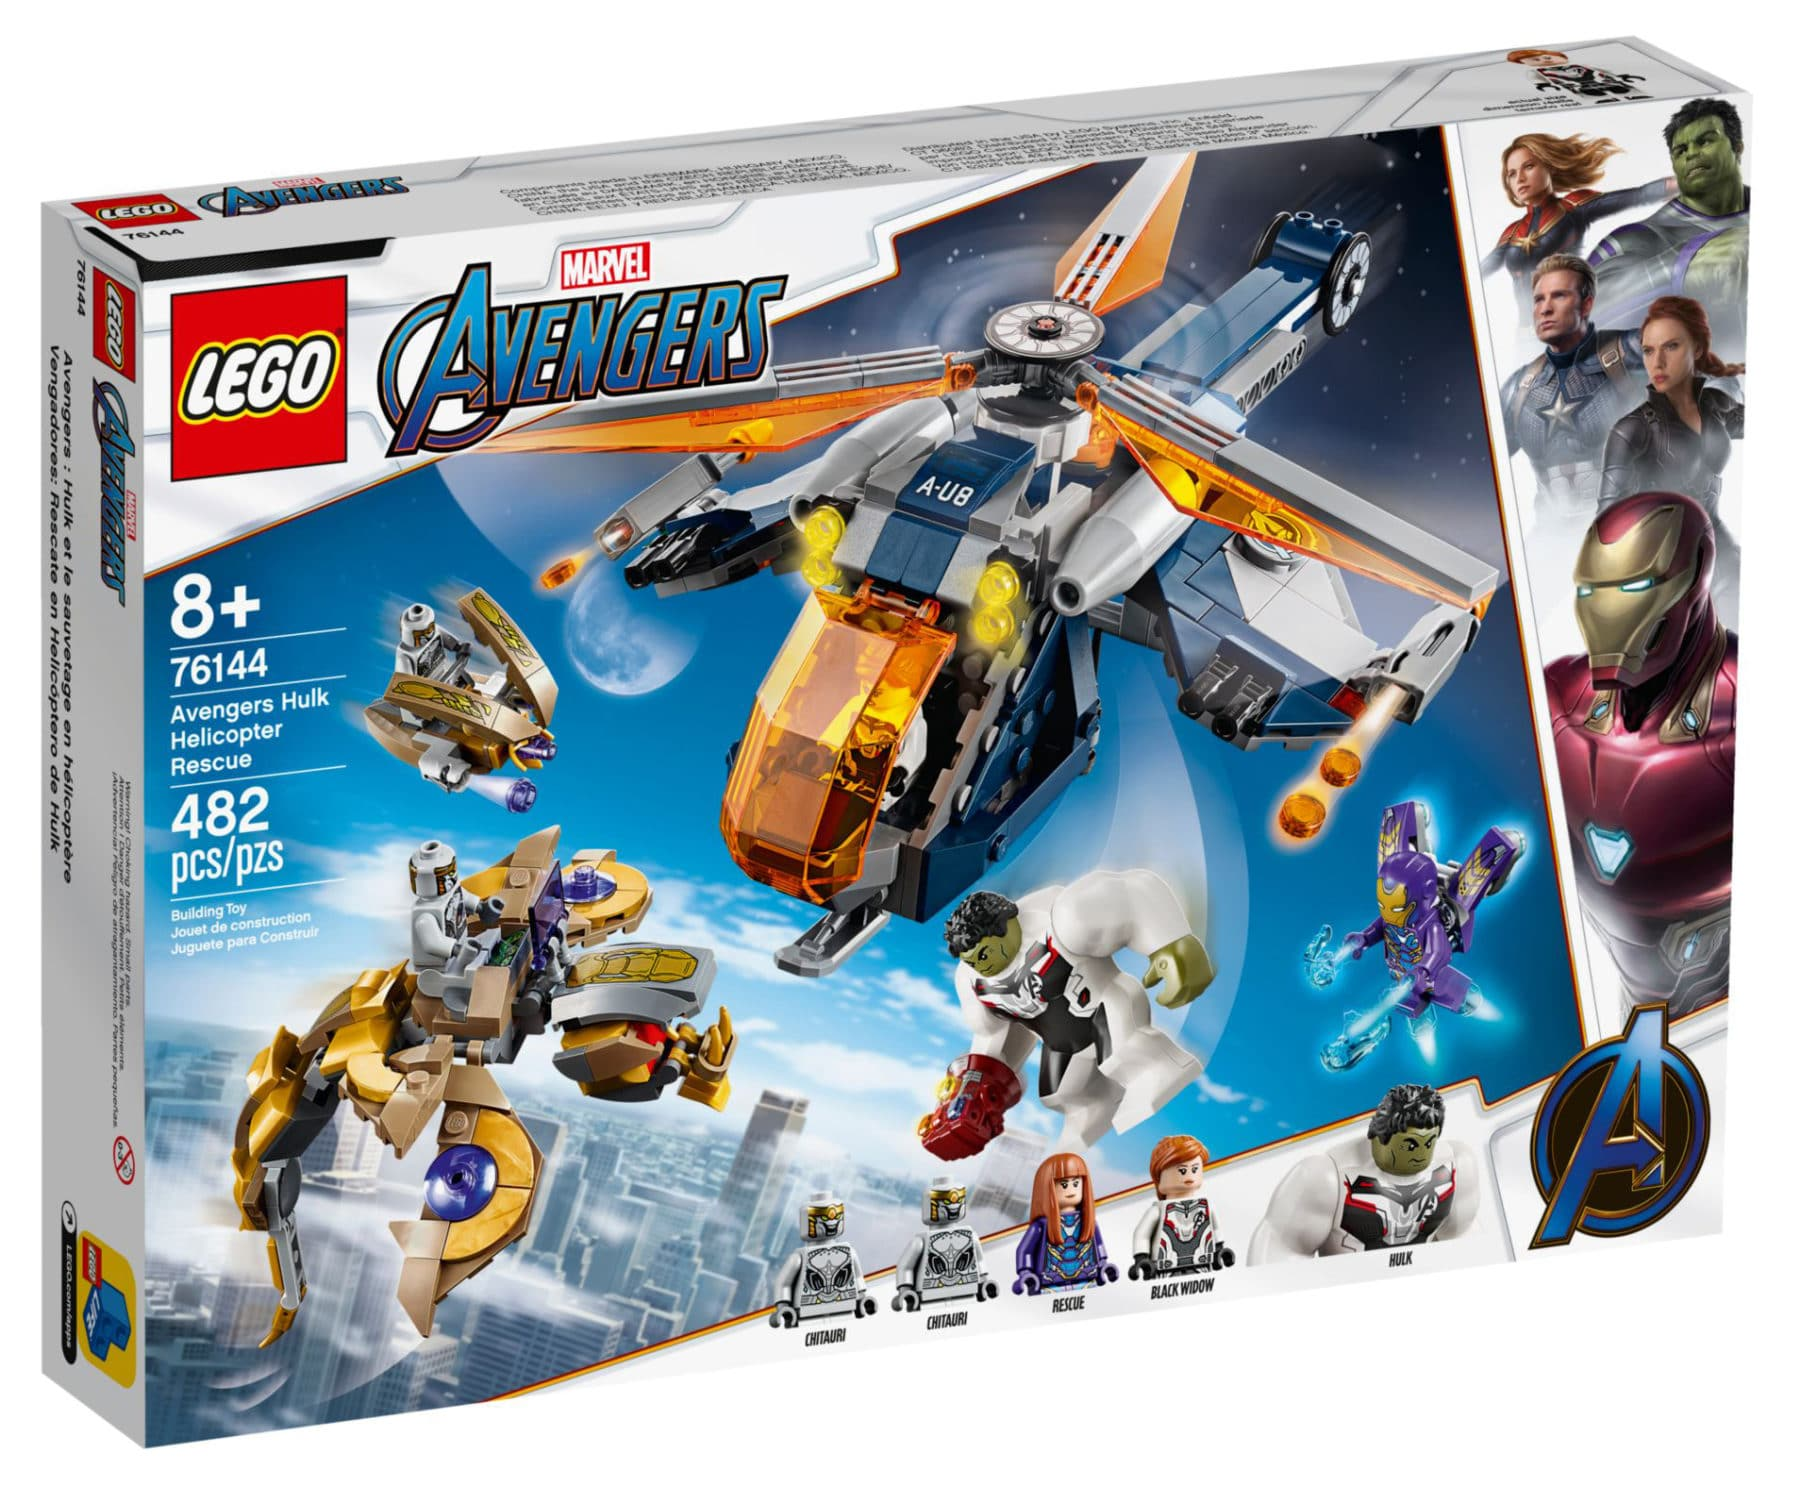 LEGO Marvel 76144 Avengers Hulk Helicopter Rescue Box